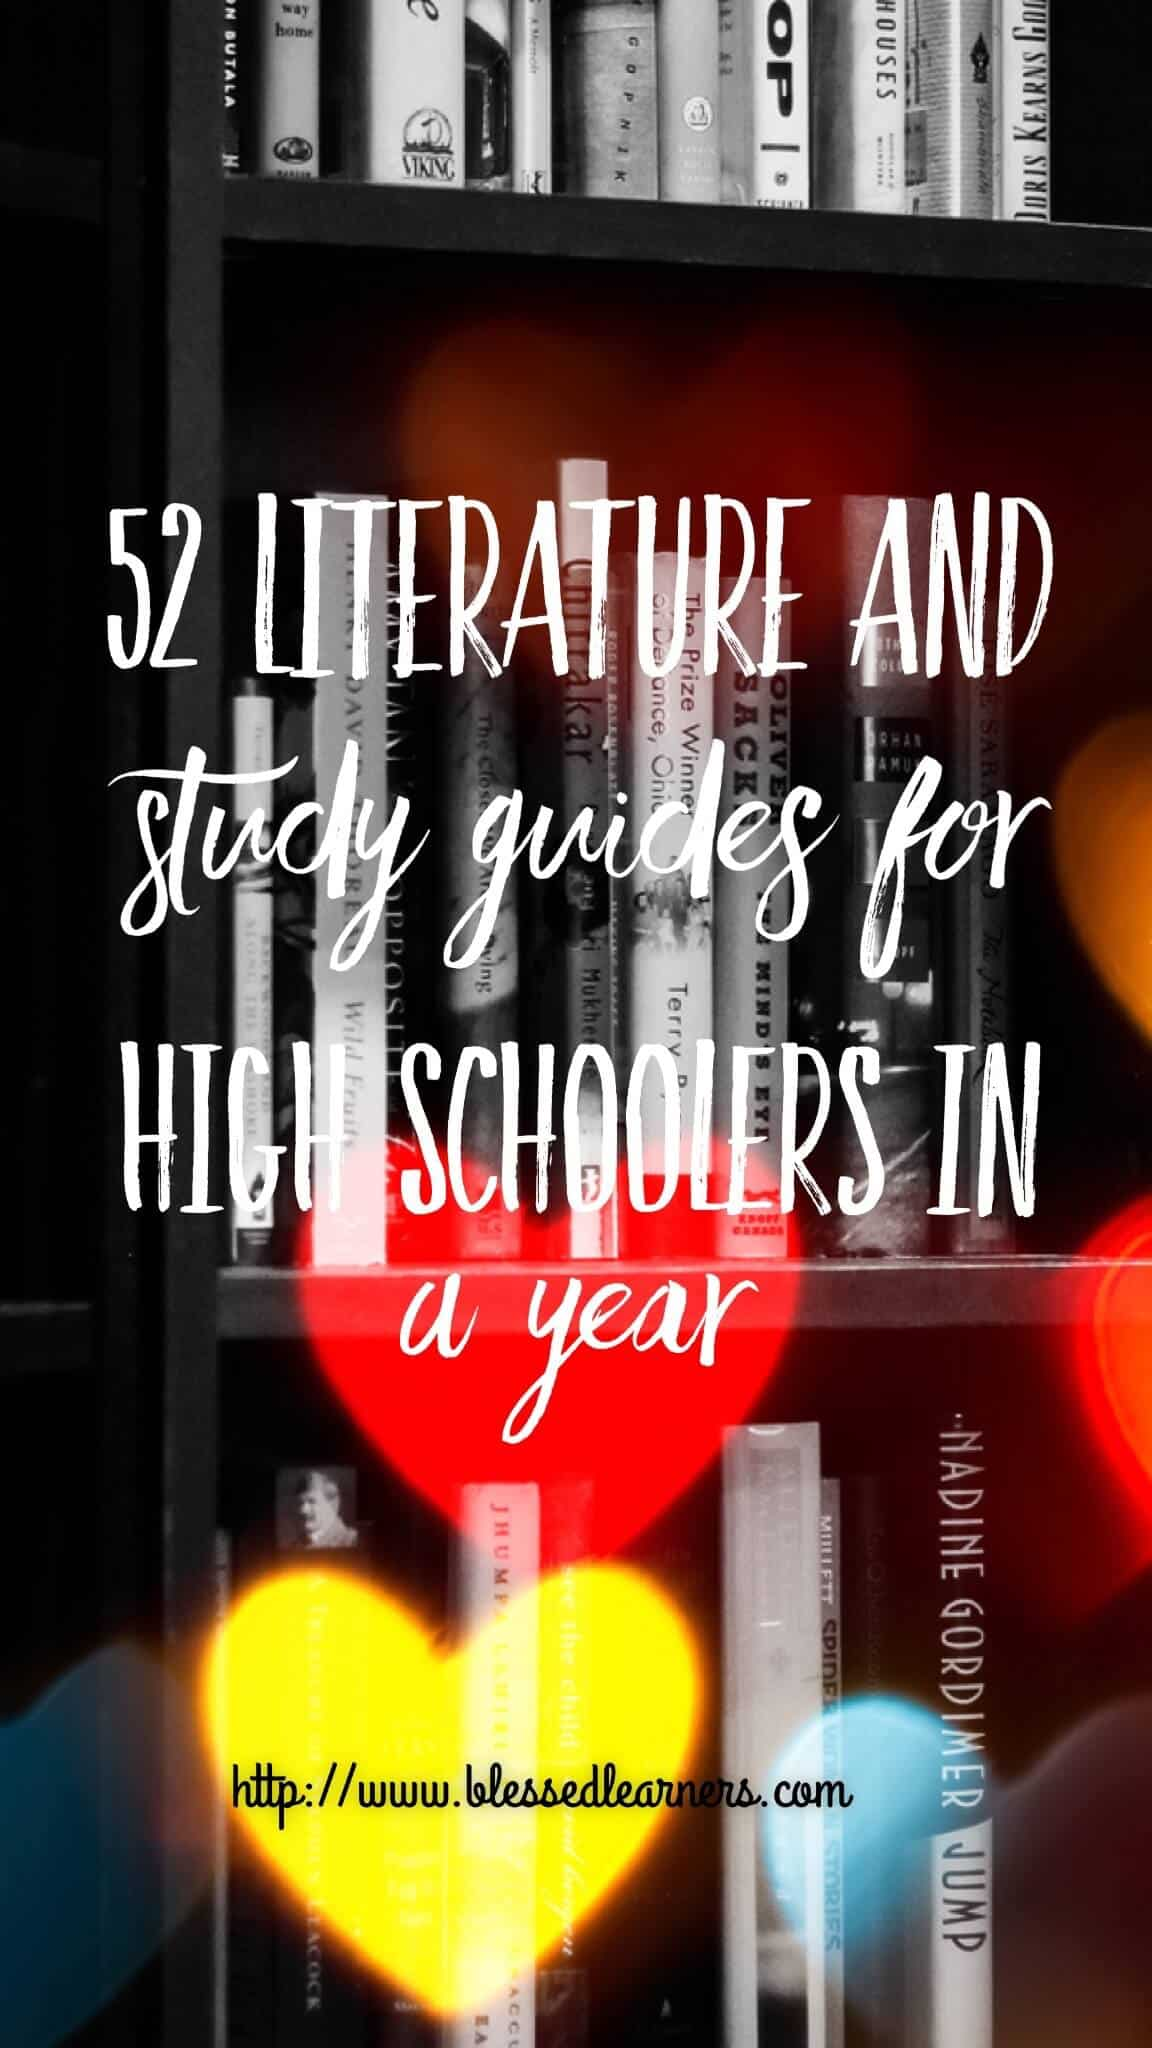 52 Literature and Study Guide for High Schoolers in A Year